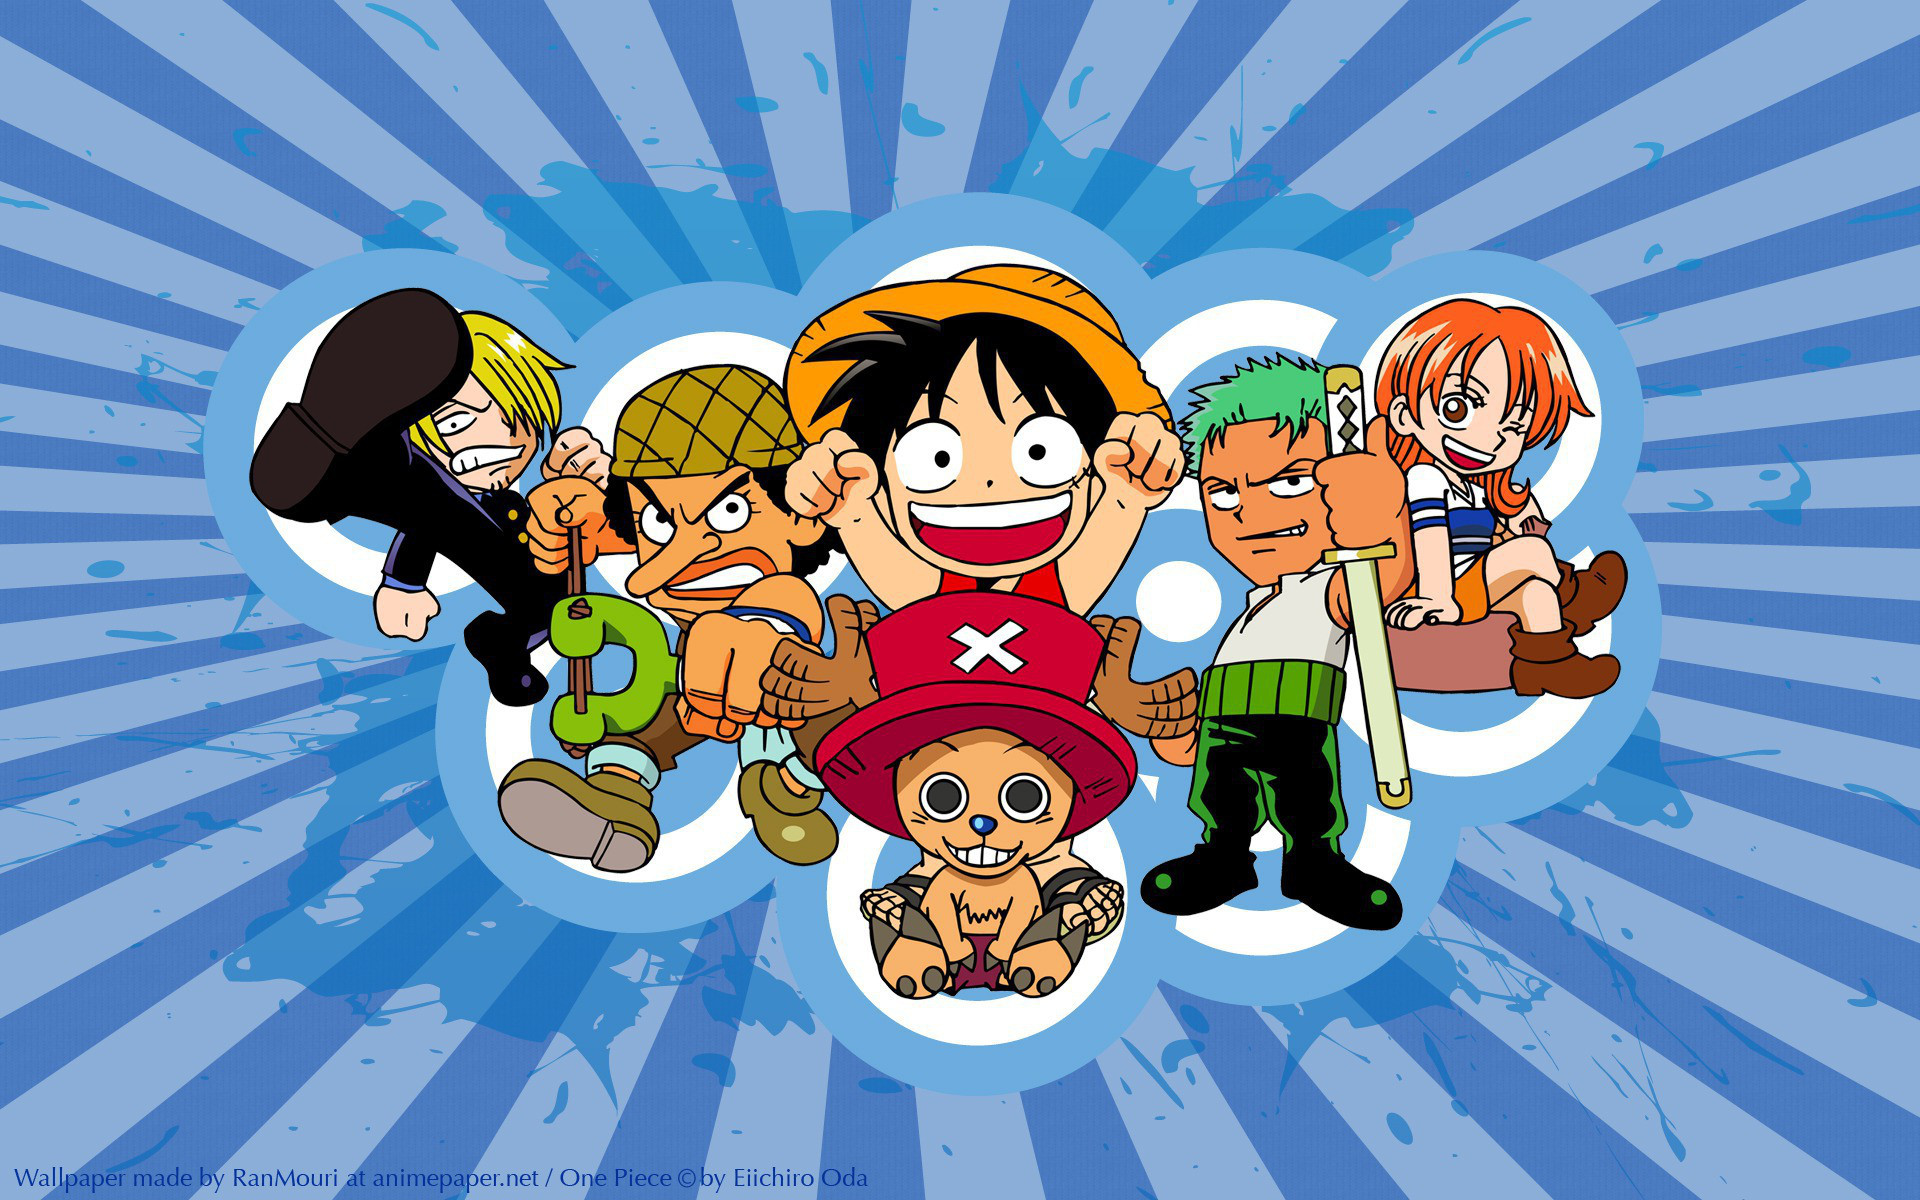 1920x1200 Anime - One Piece Chibi Monkey D. Luffy Sanji (One Piece) Zoro Roronoa